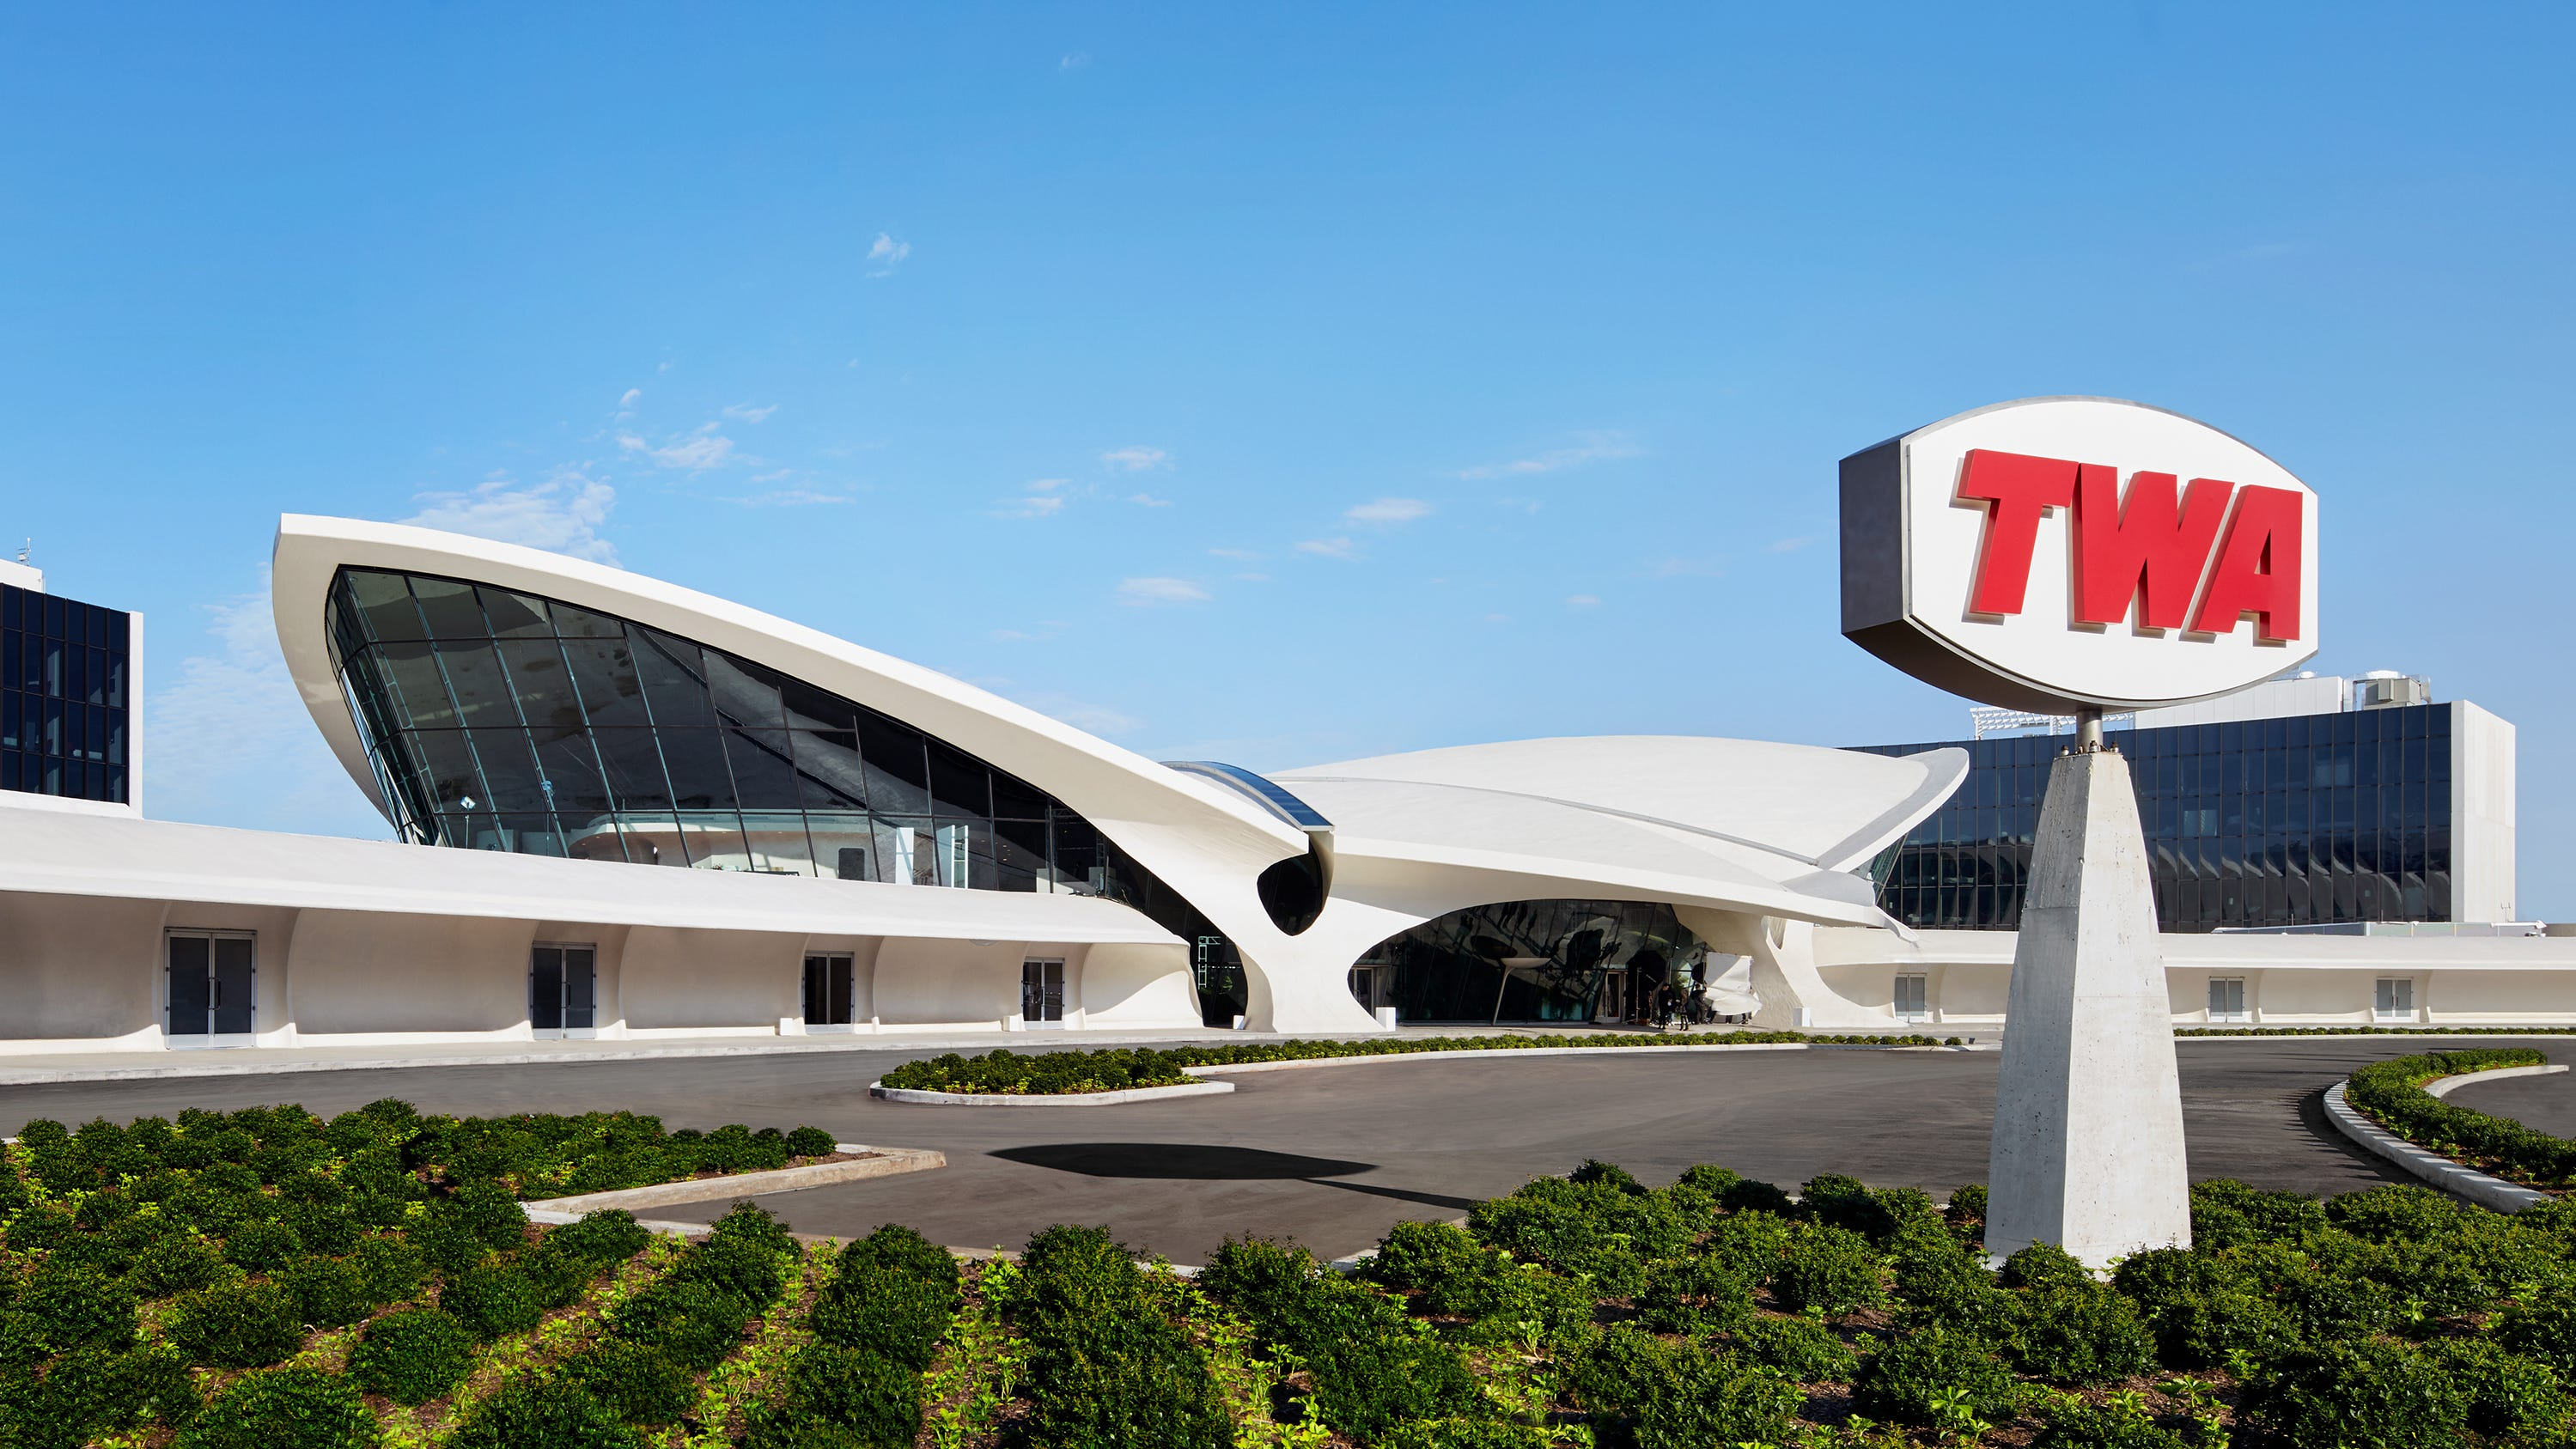 TWA Hotel at JFK Airport